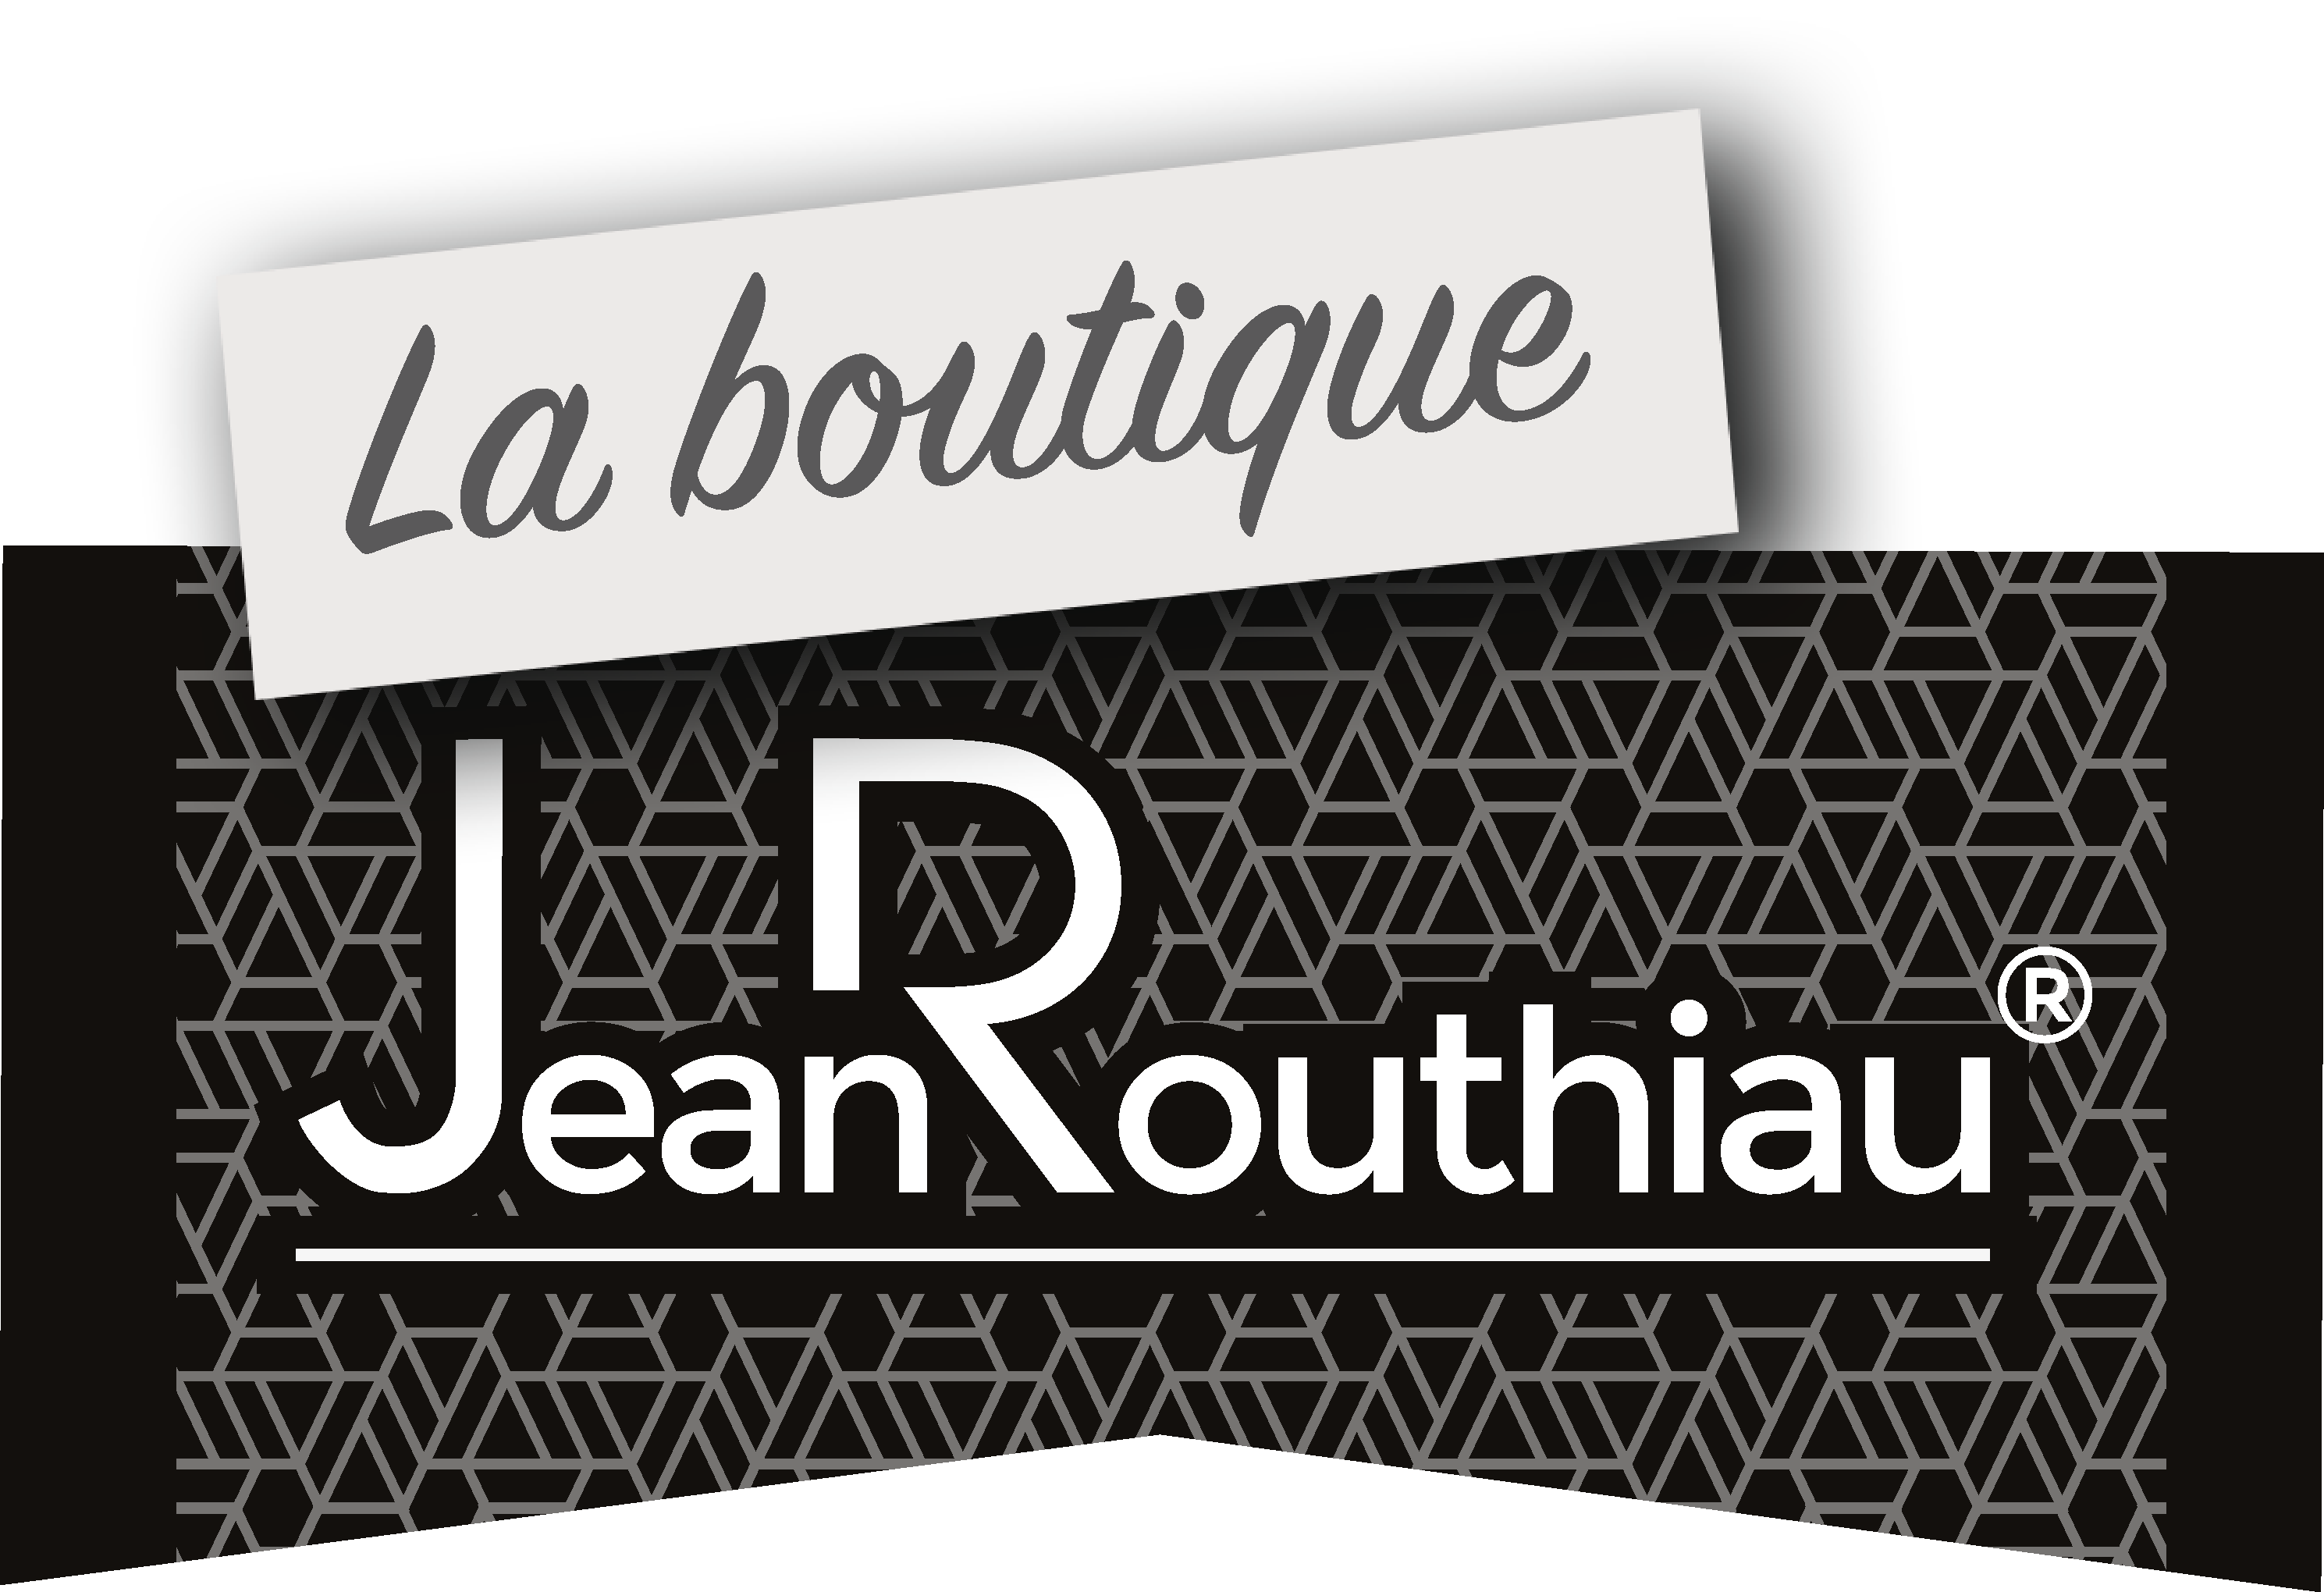 La Boutique Jean Routhiau